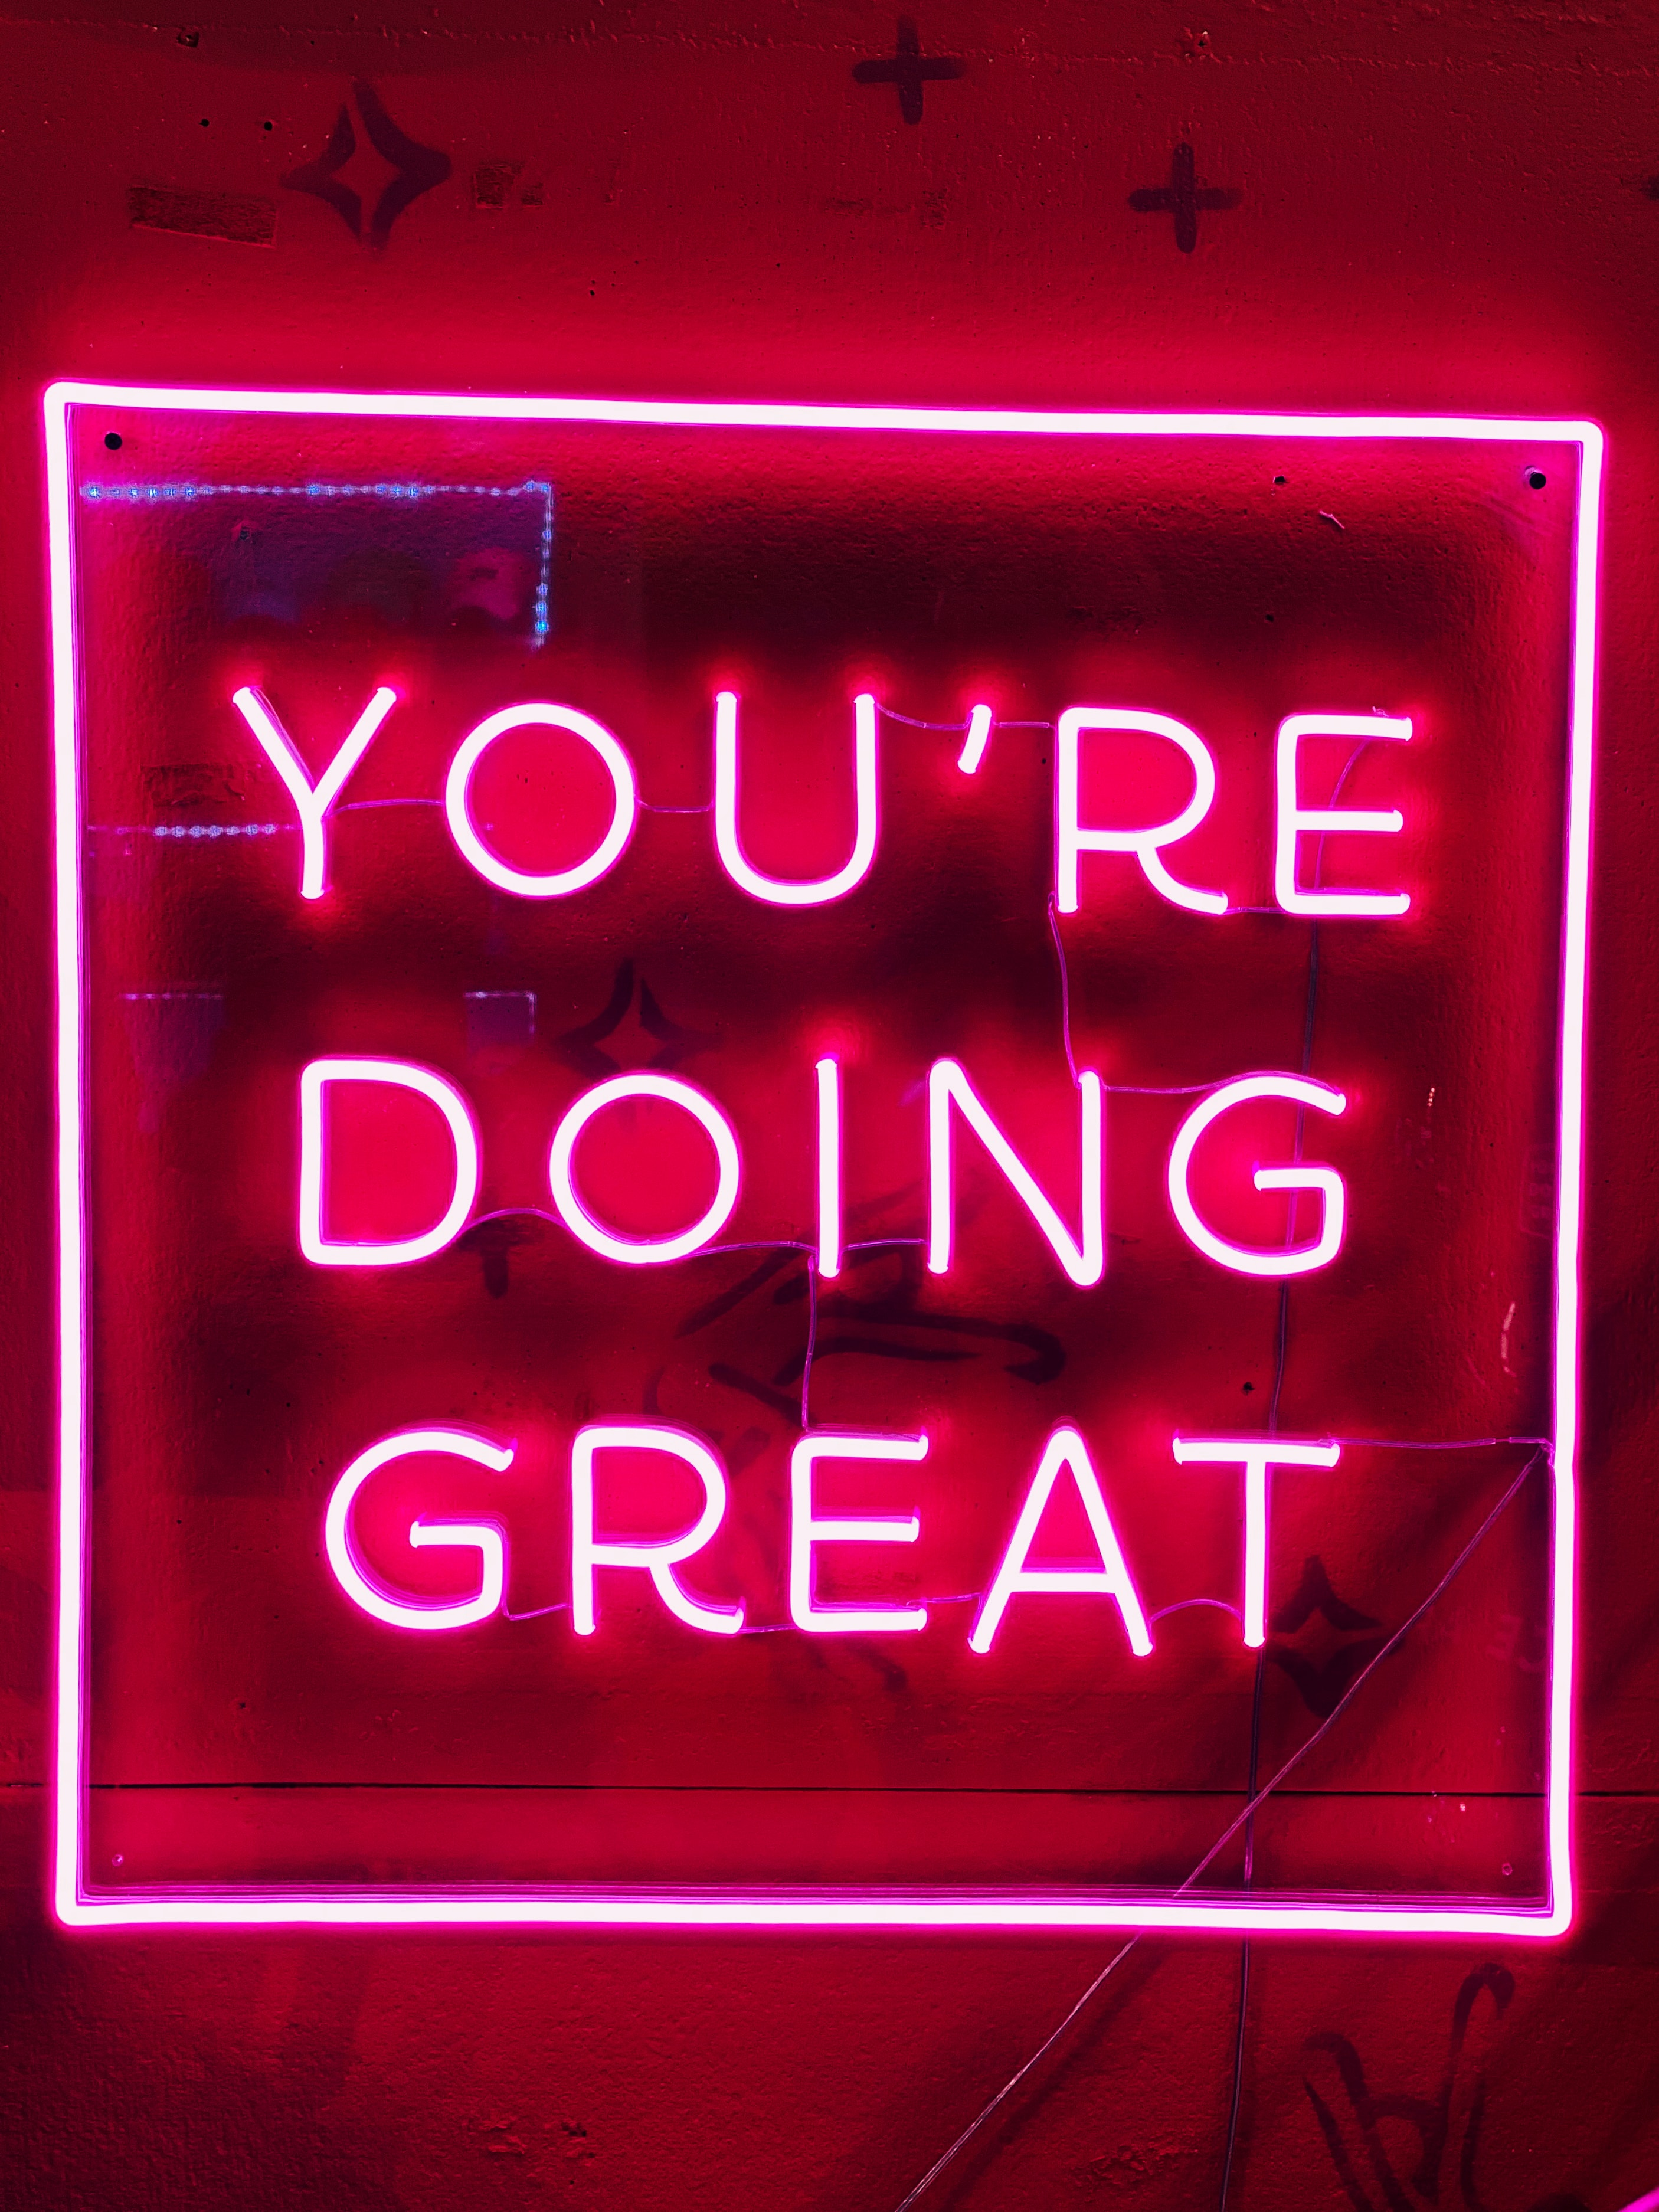 144433 download wallpaper Words, Motivation, Text, Neon, Glow screensavers and pictures for free